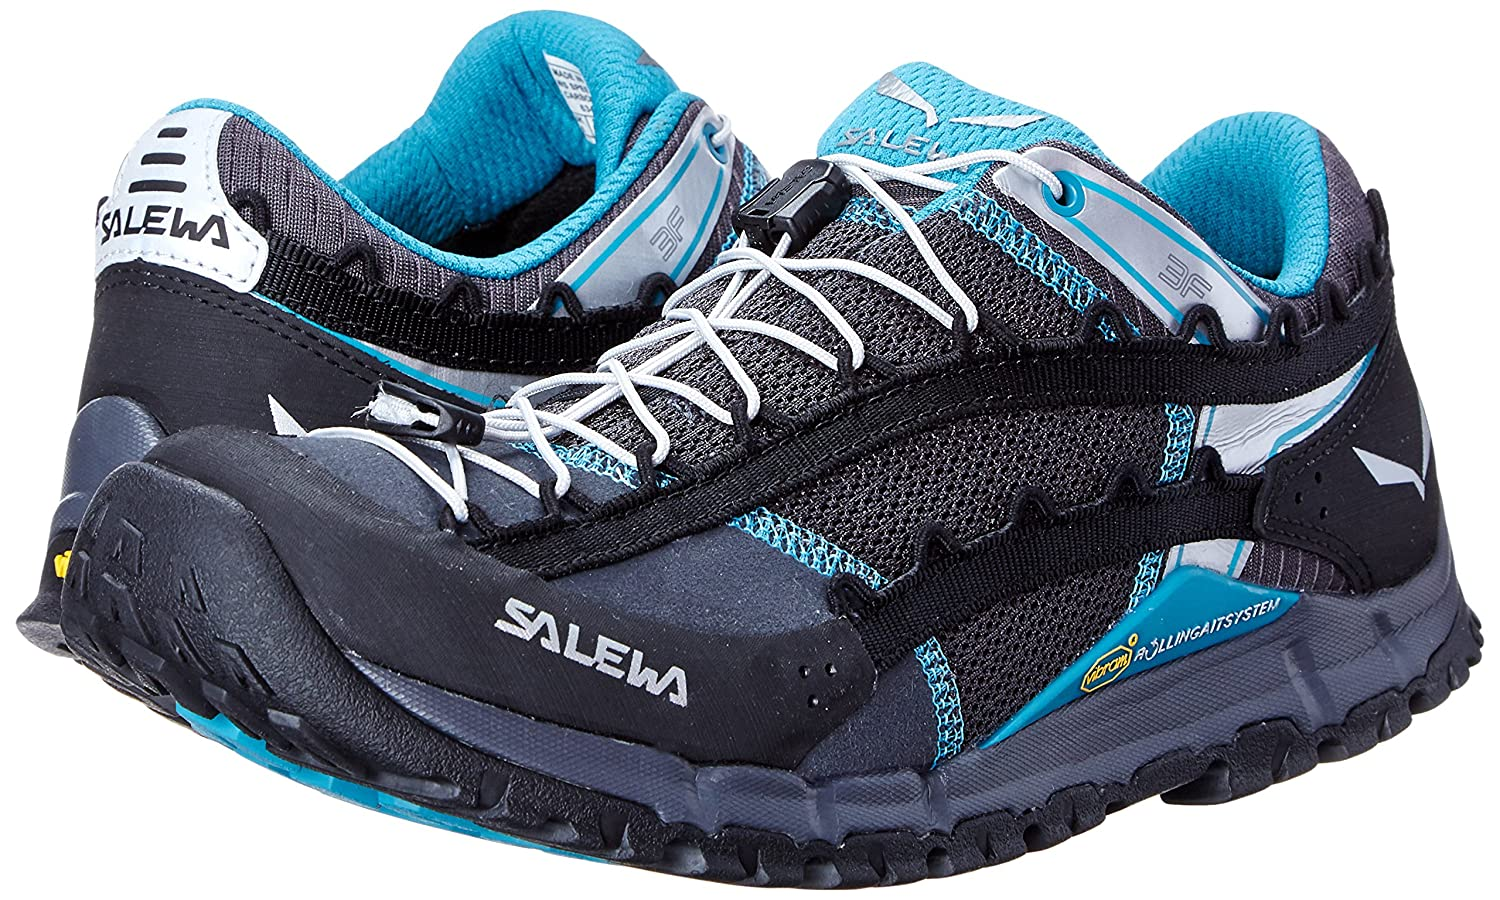 Salewa Women's WS Speed Ascent Hiking Shoe B00N48NYSA 6 B(M) US|Carbon/Pagoda